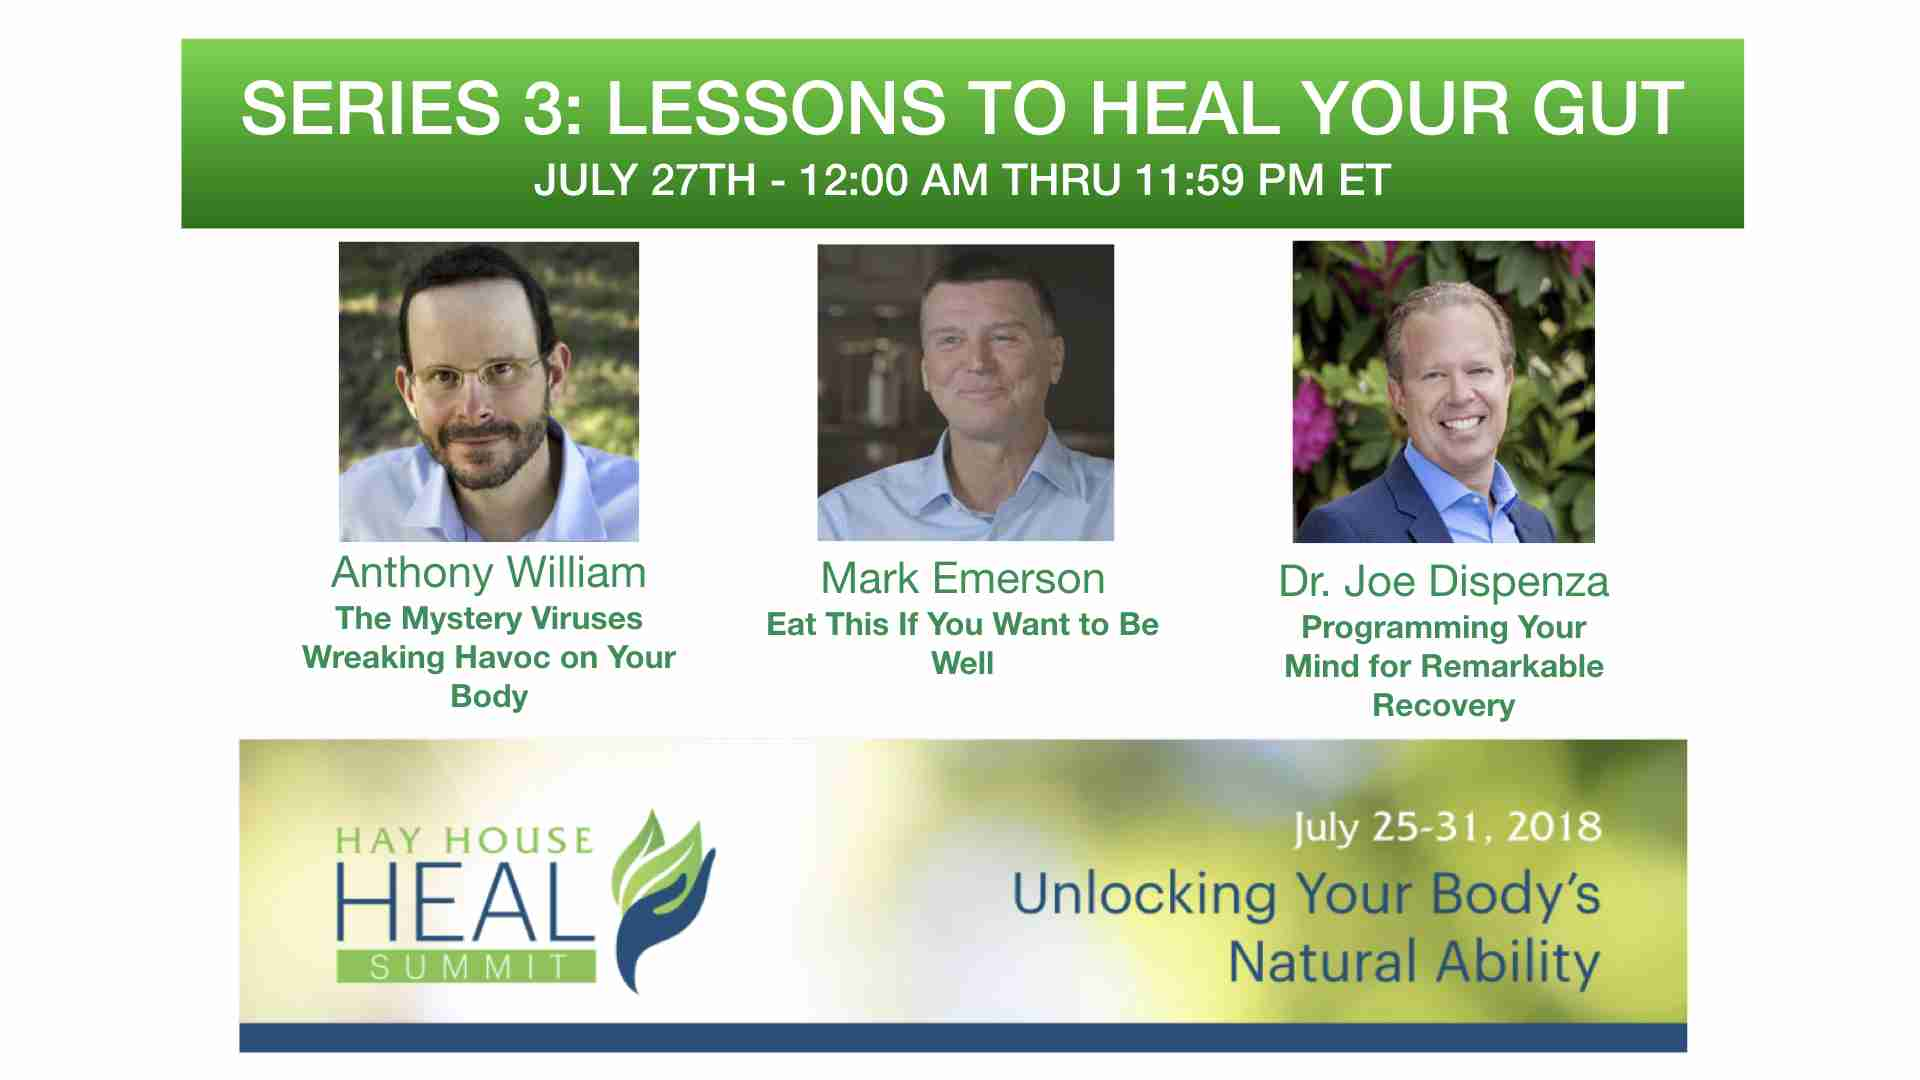 HEAL Summit Series 3 - Lessons to Heal Your Gut - http://www